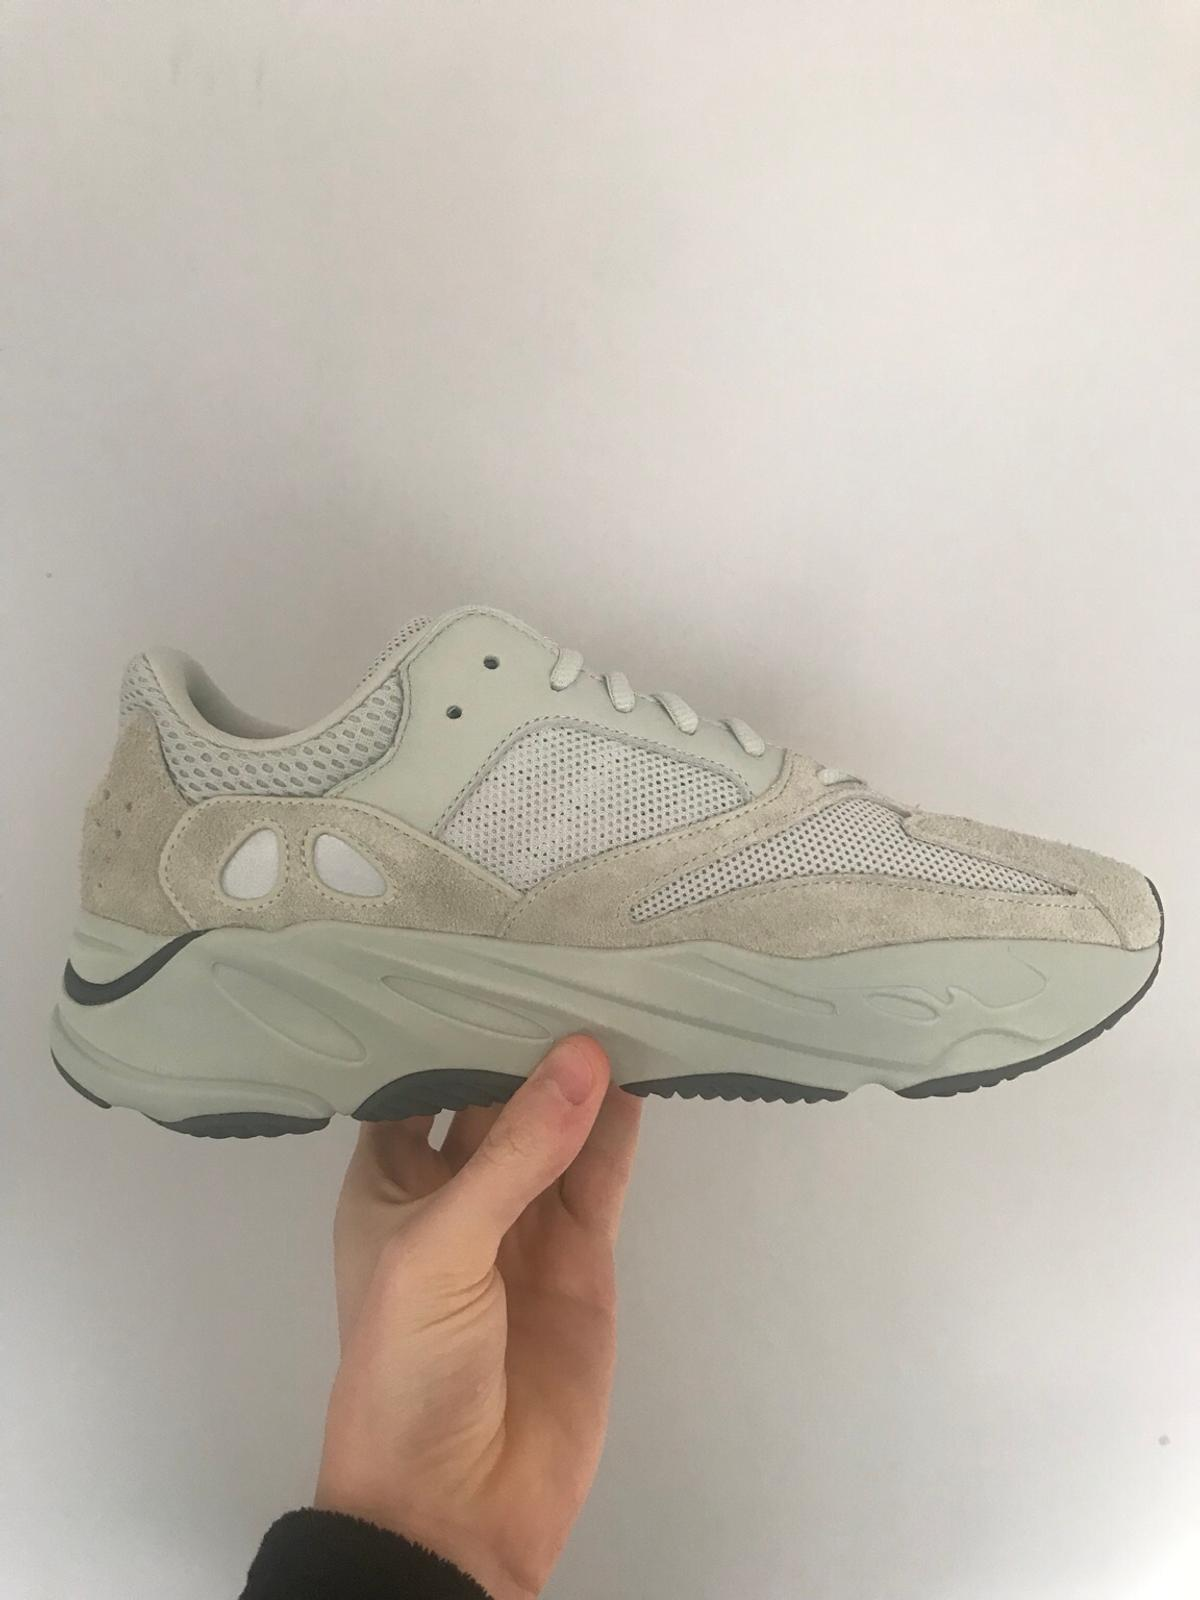 f482458ae49 Adidas Yeezy 700 Salt uk 10 in ST5-Lyme for £260.00 for sale - Shpock